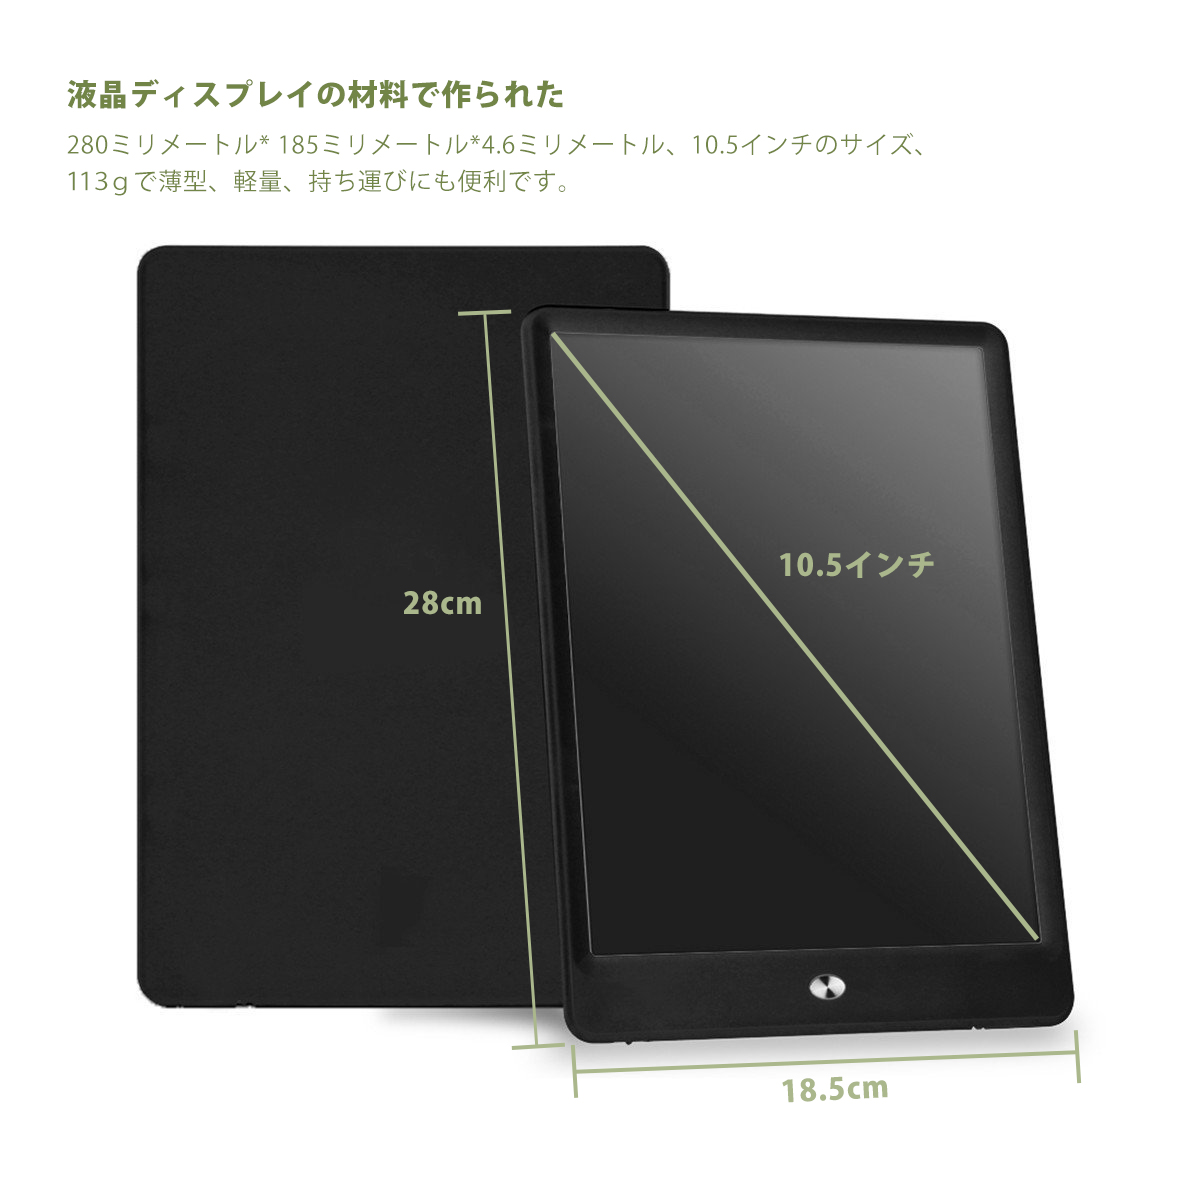 EPOLLO Ultra Thin 10.5 Inch LCD Writing Tablet Digital Drawing Board Handwriting Pads with Pen